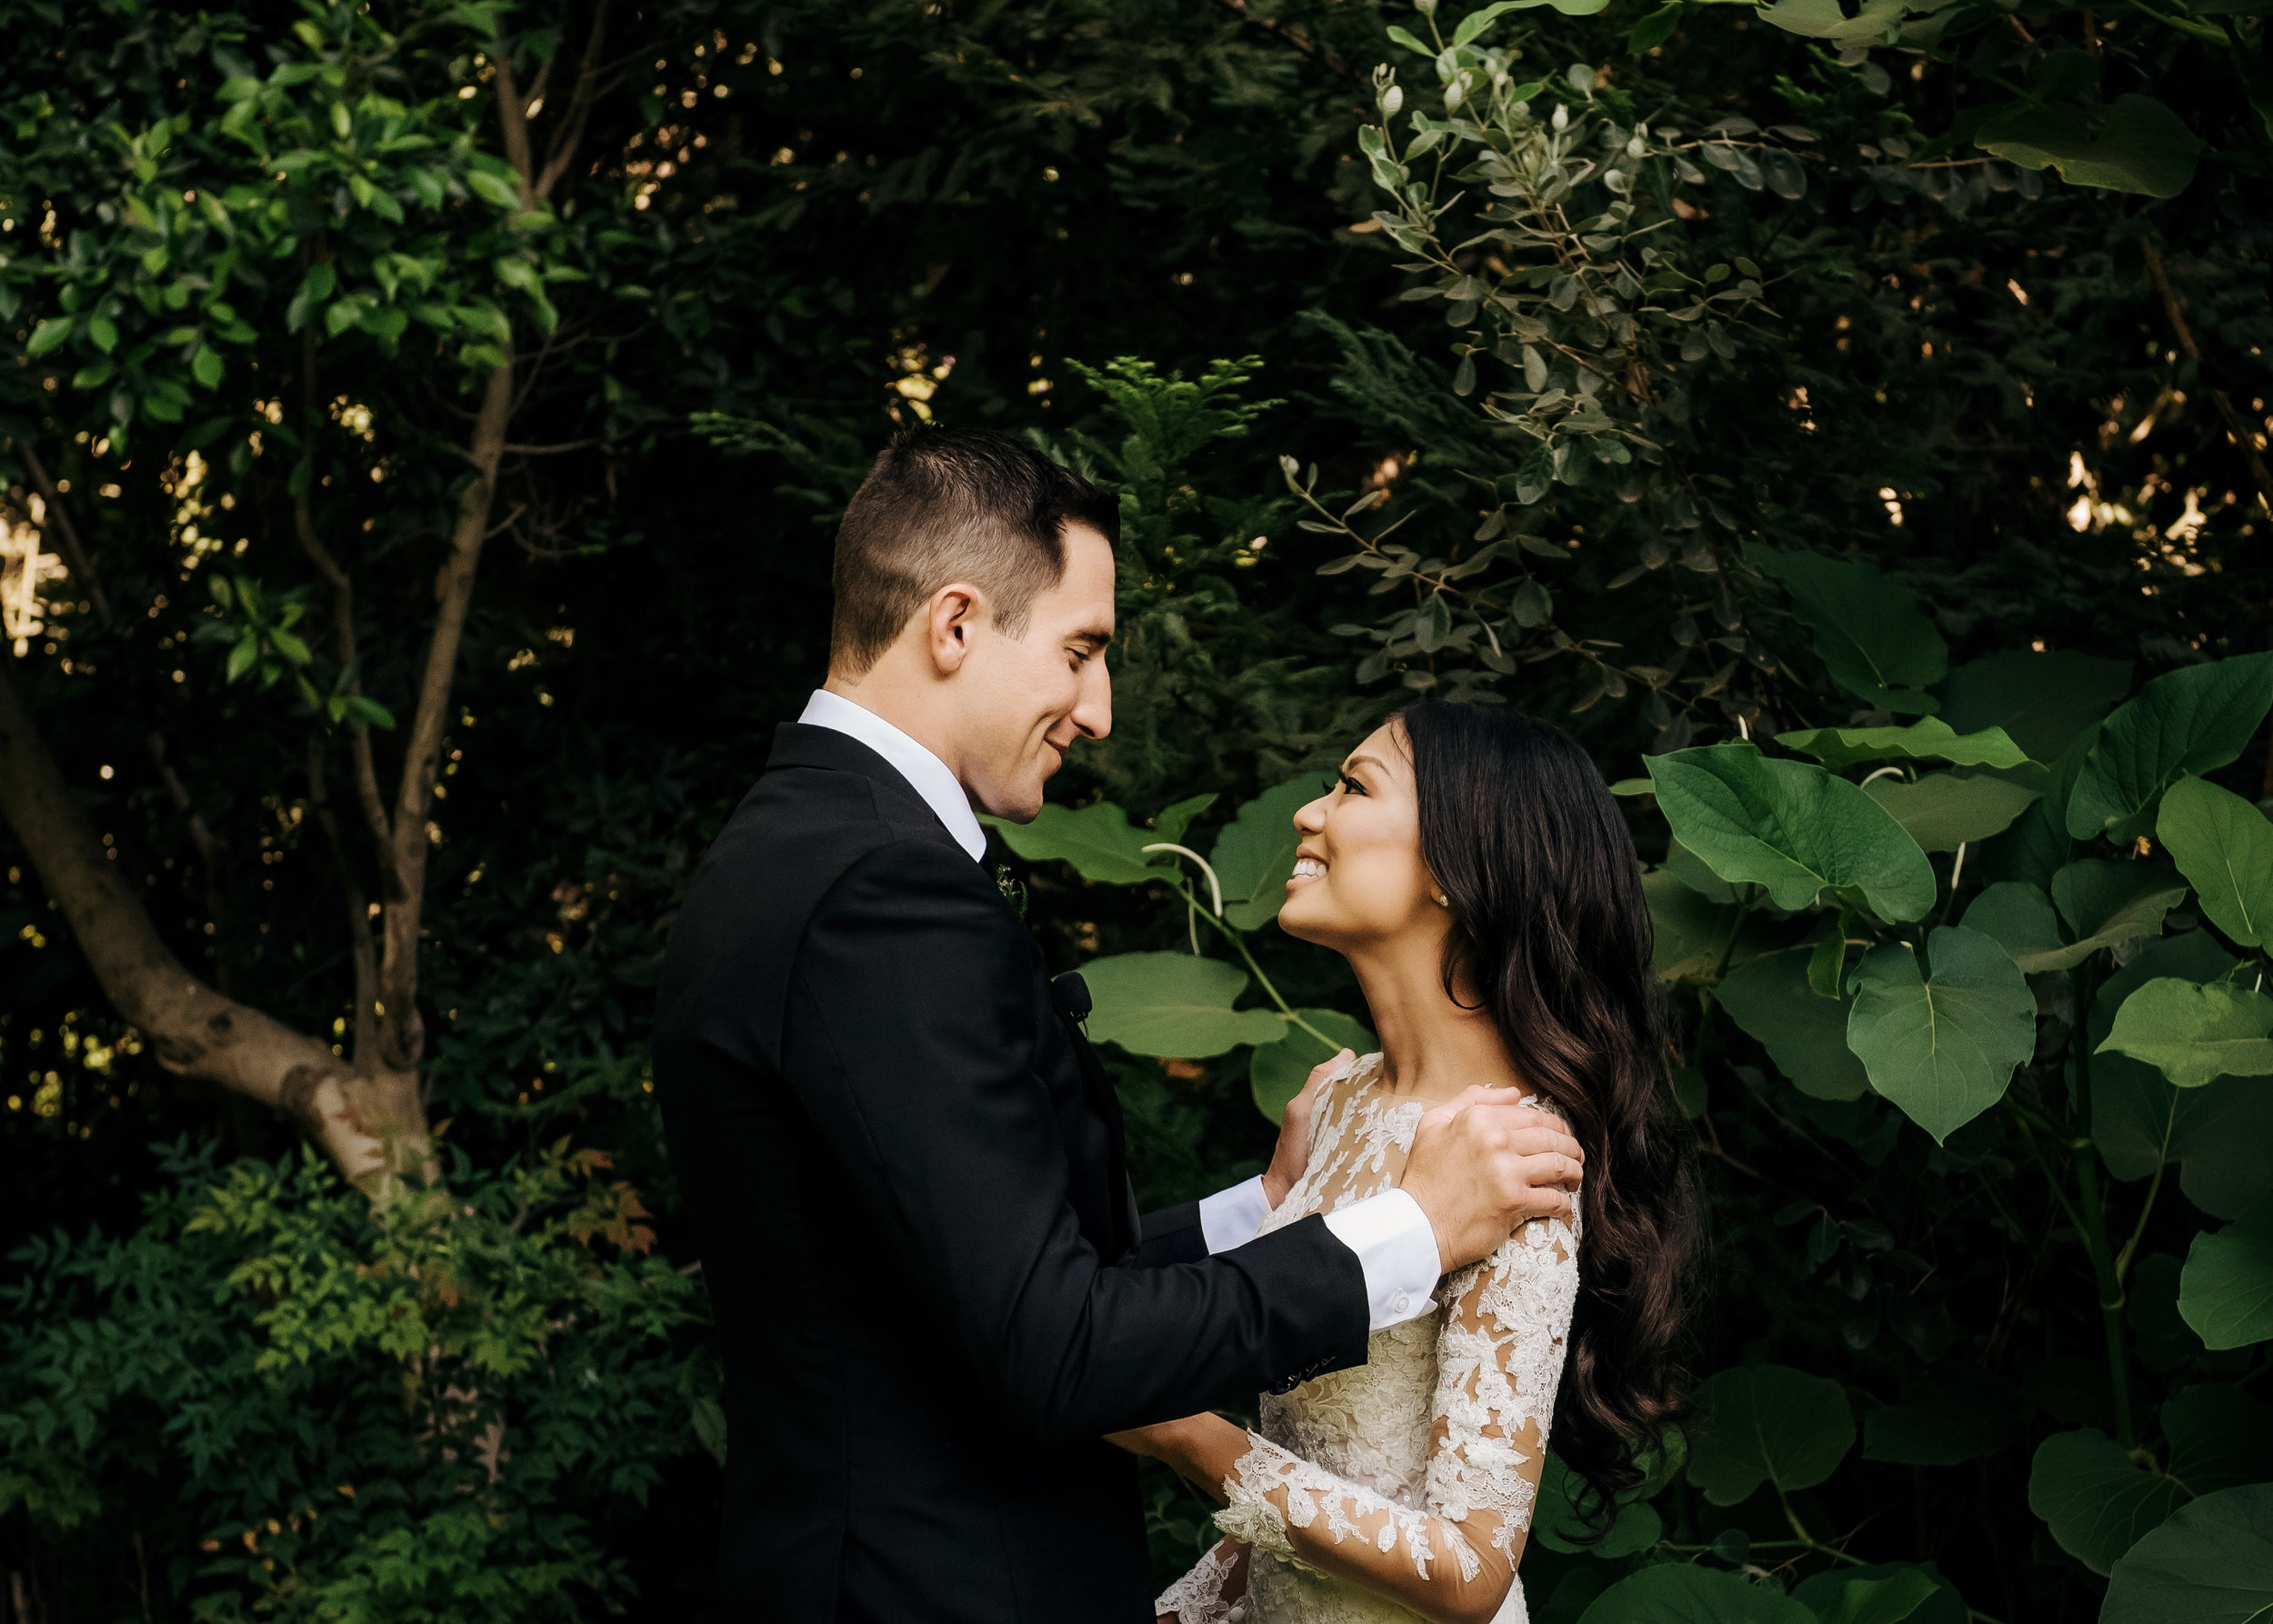 Turchin_20180825_Austinae-Brent-Wedding_128.jpg